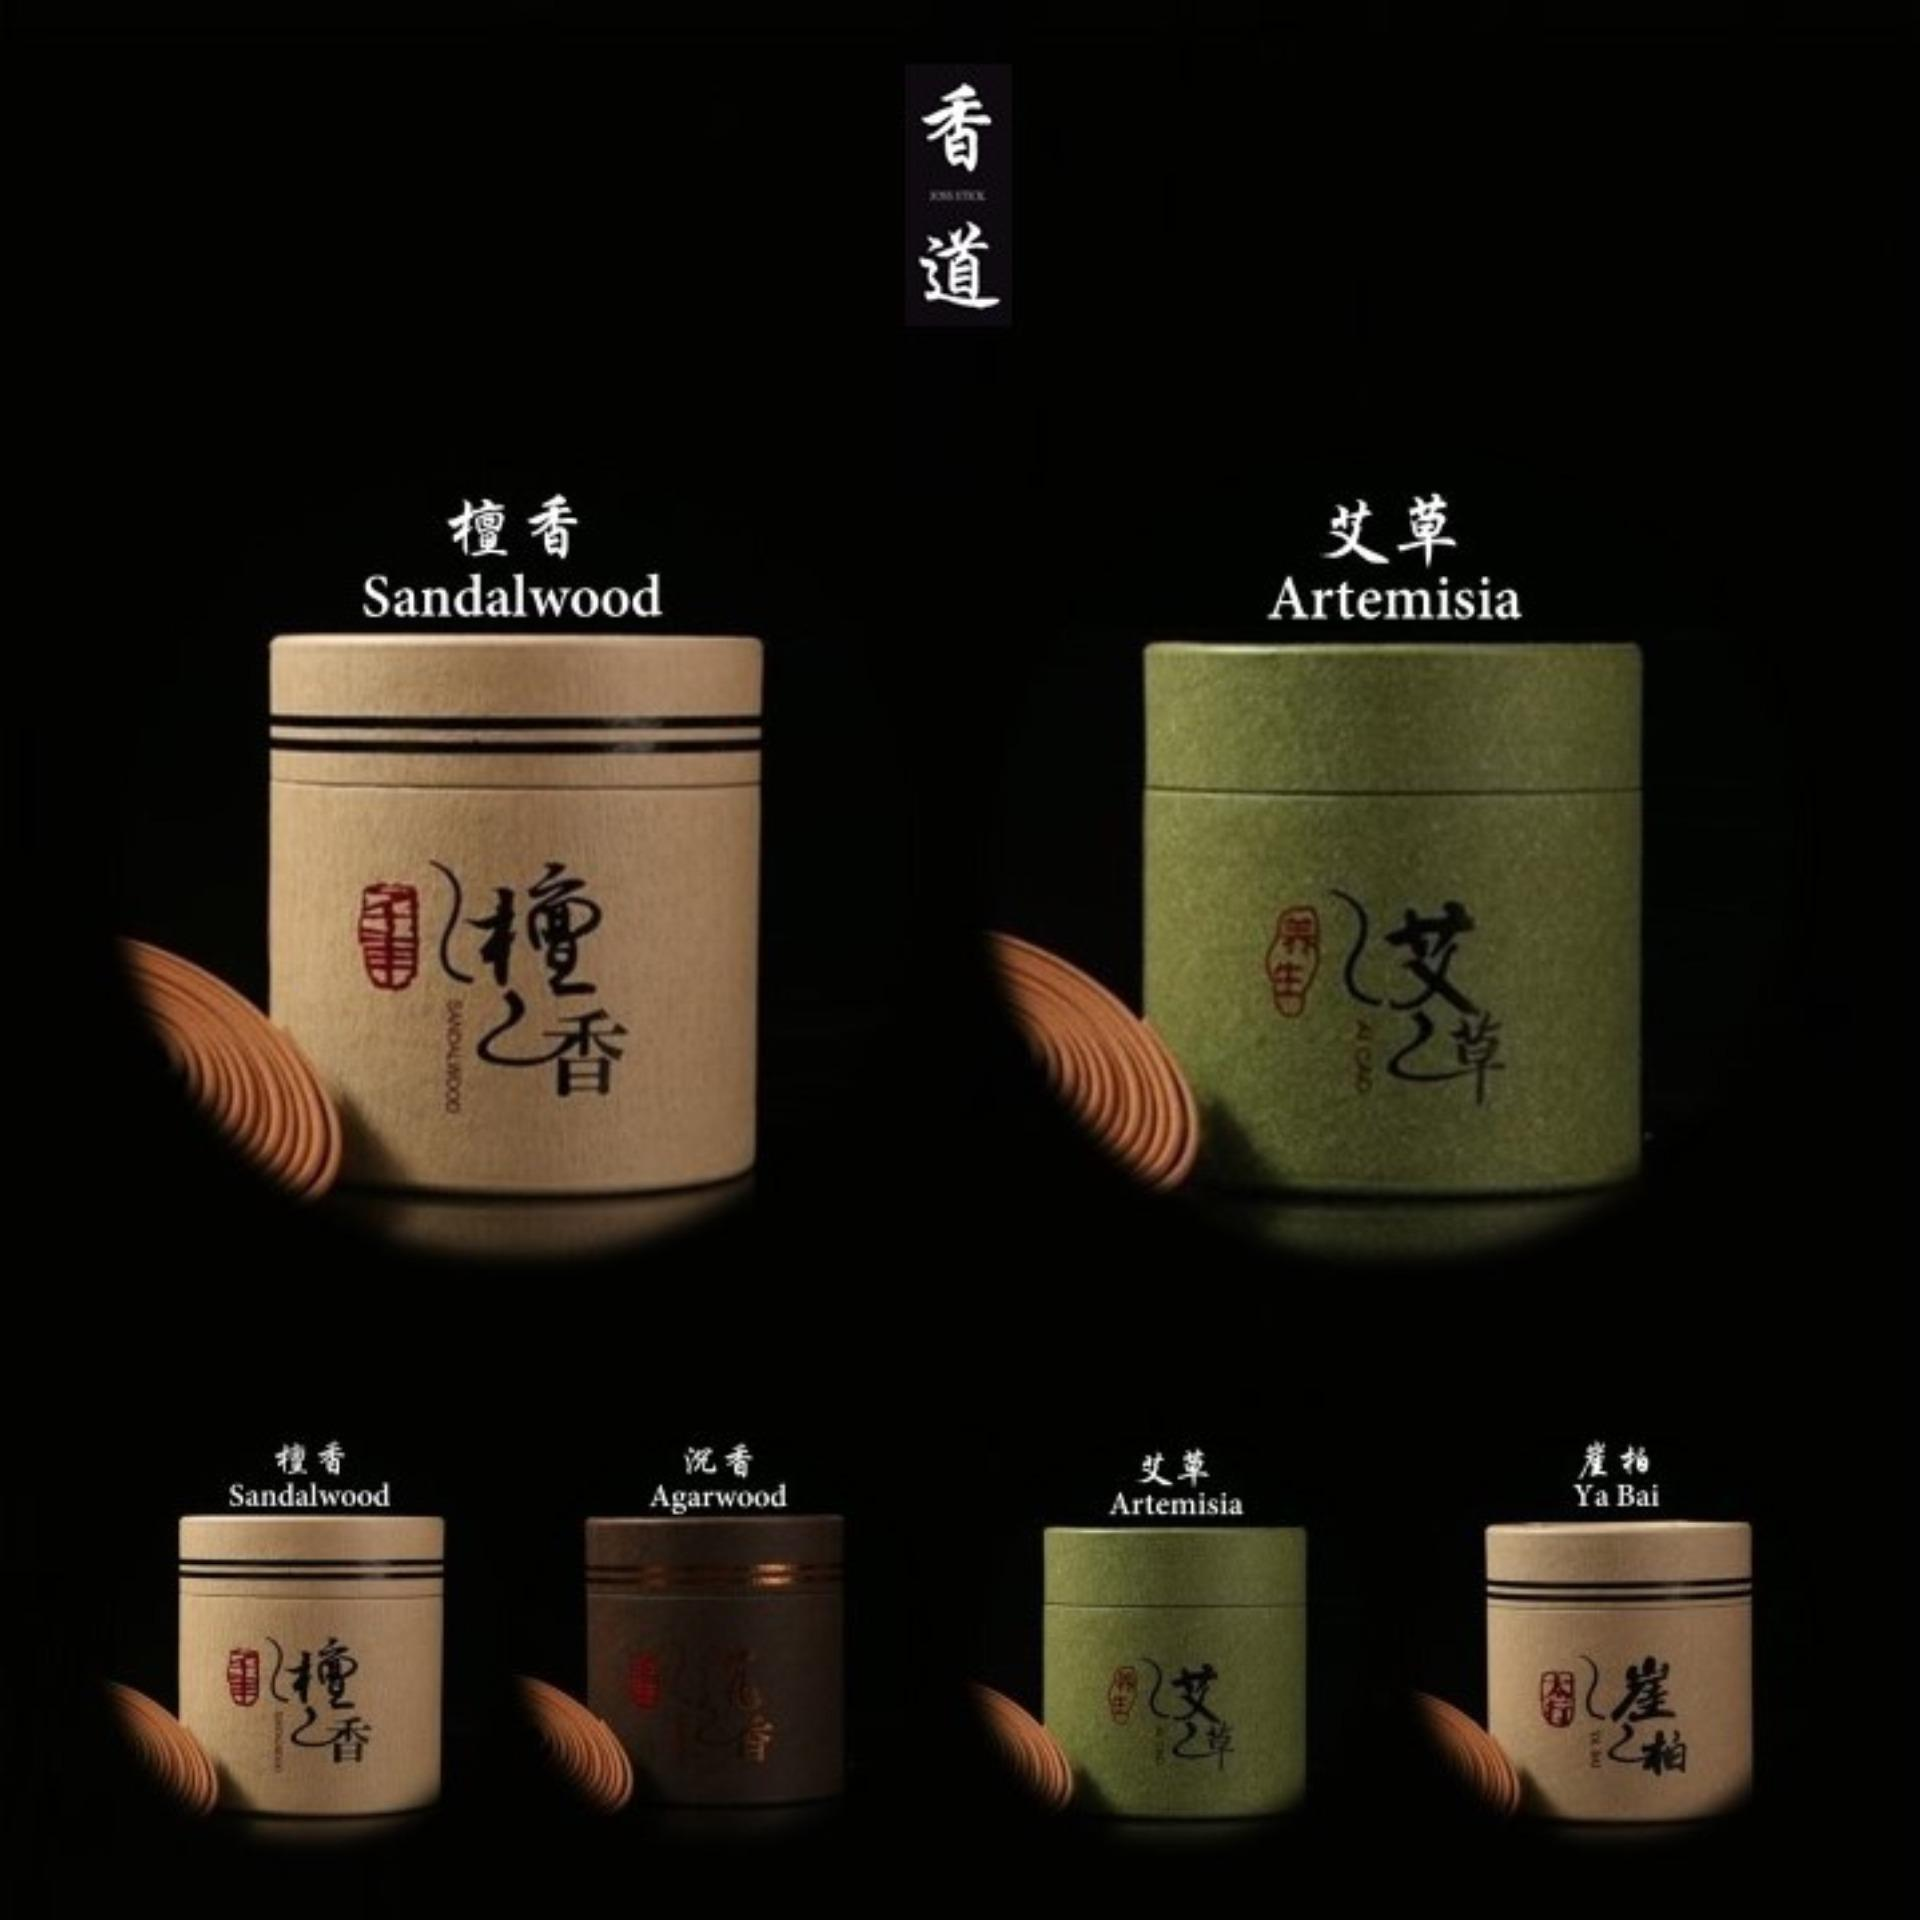 2 mixed cases of 48pcs Sandalwood 檀香 / Agarwood 沉香 / Artemisia 艾草 /  Ya Bai 崖柏 Pure Sandalwood Incense Coils about 4 hours long